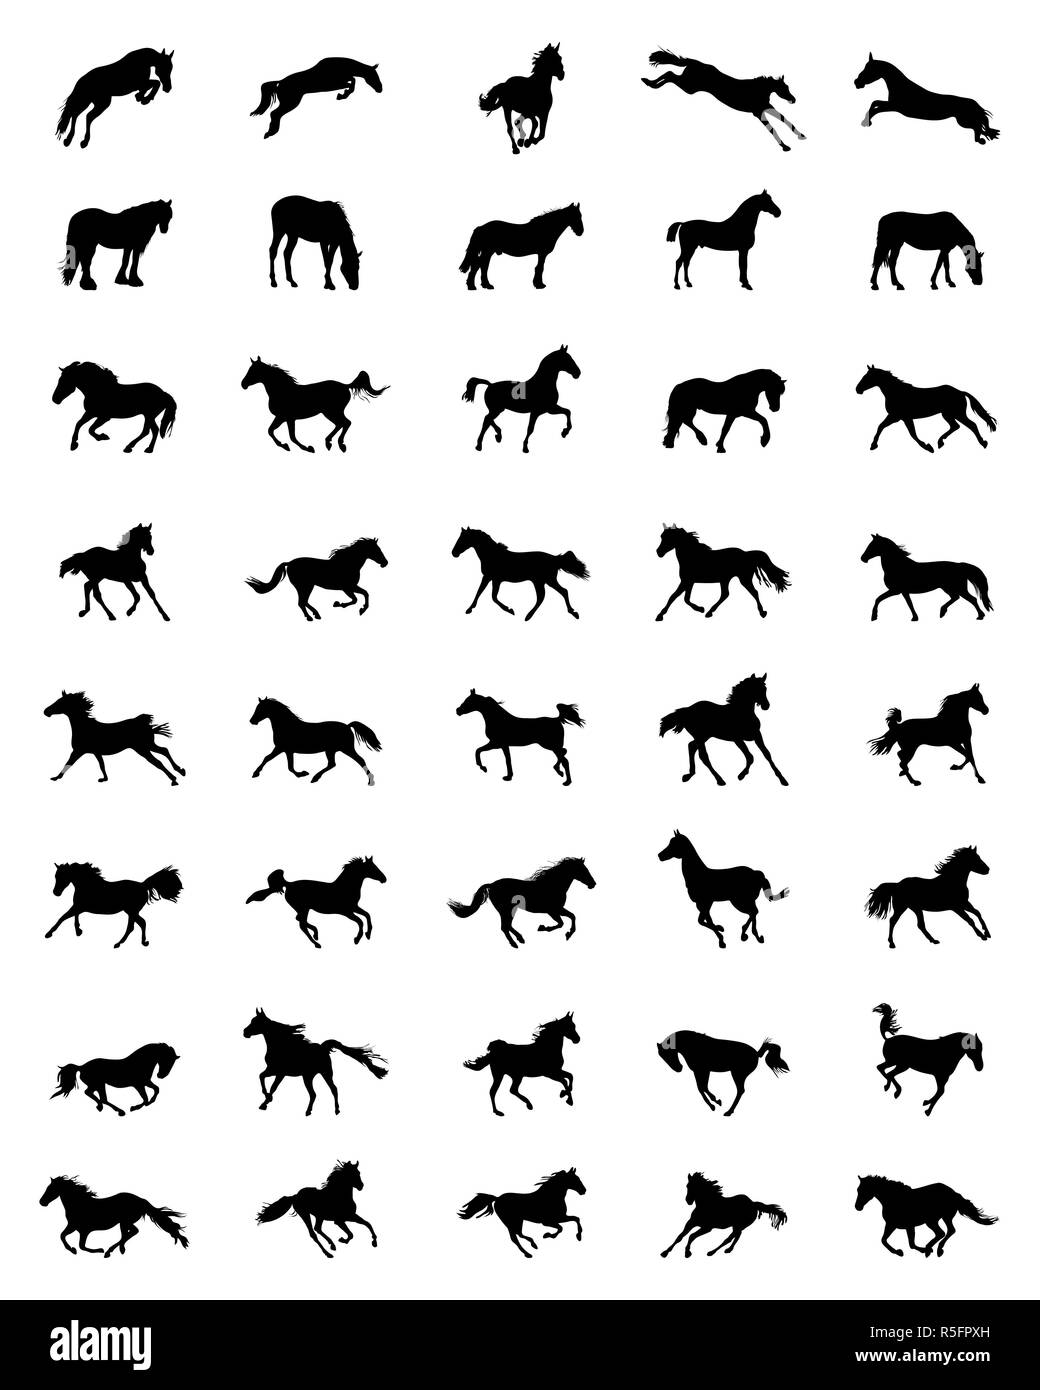 Black silhouettes of horses on a white background - Stock Image